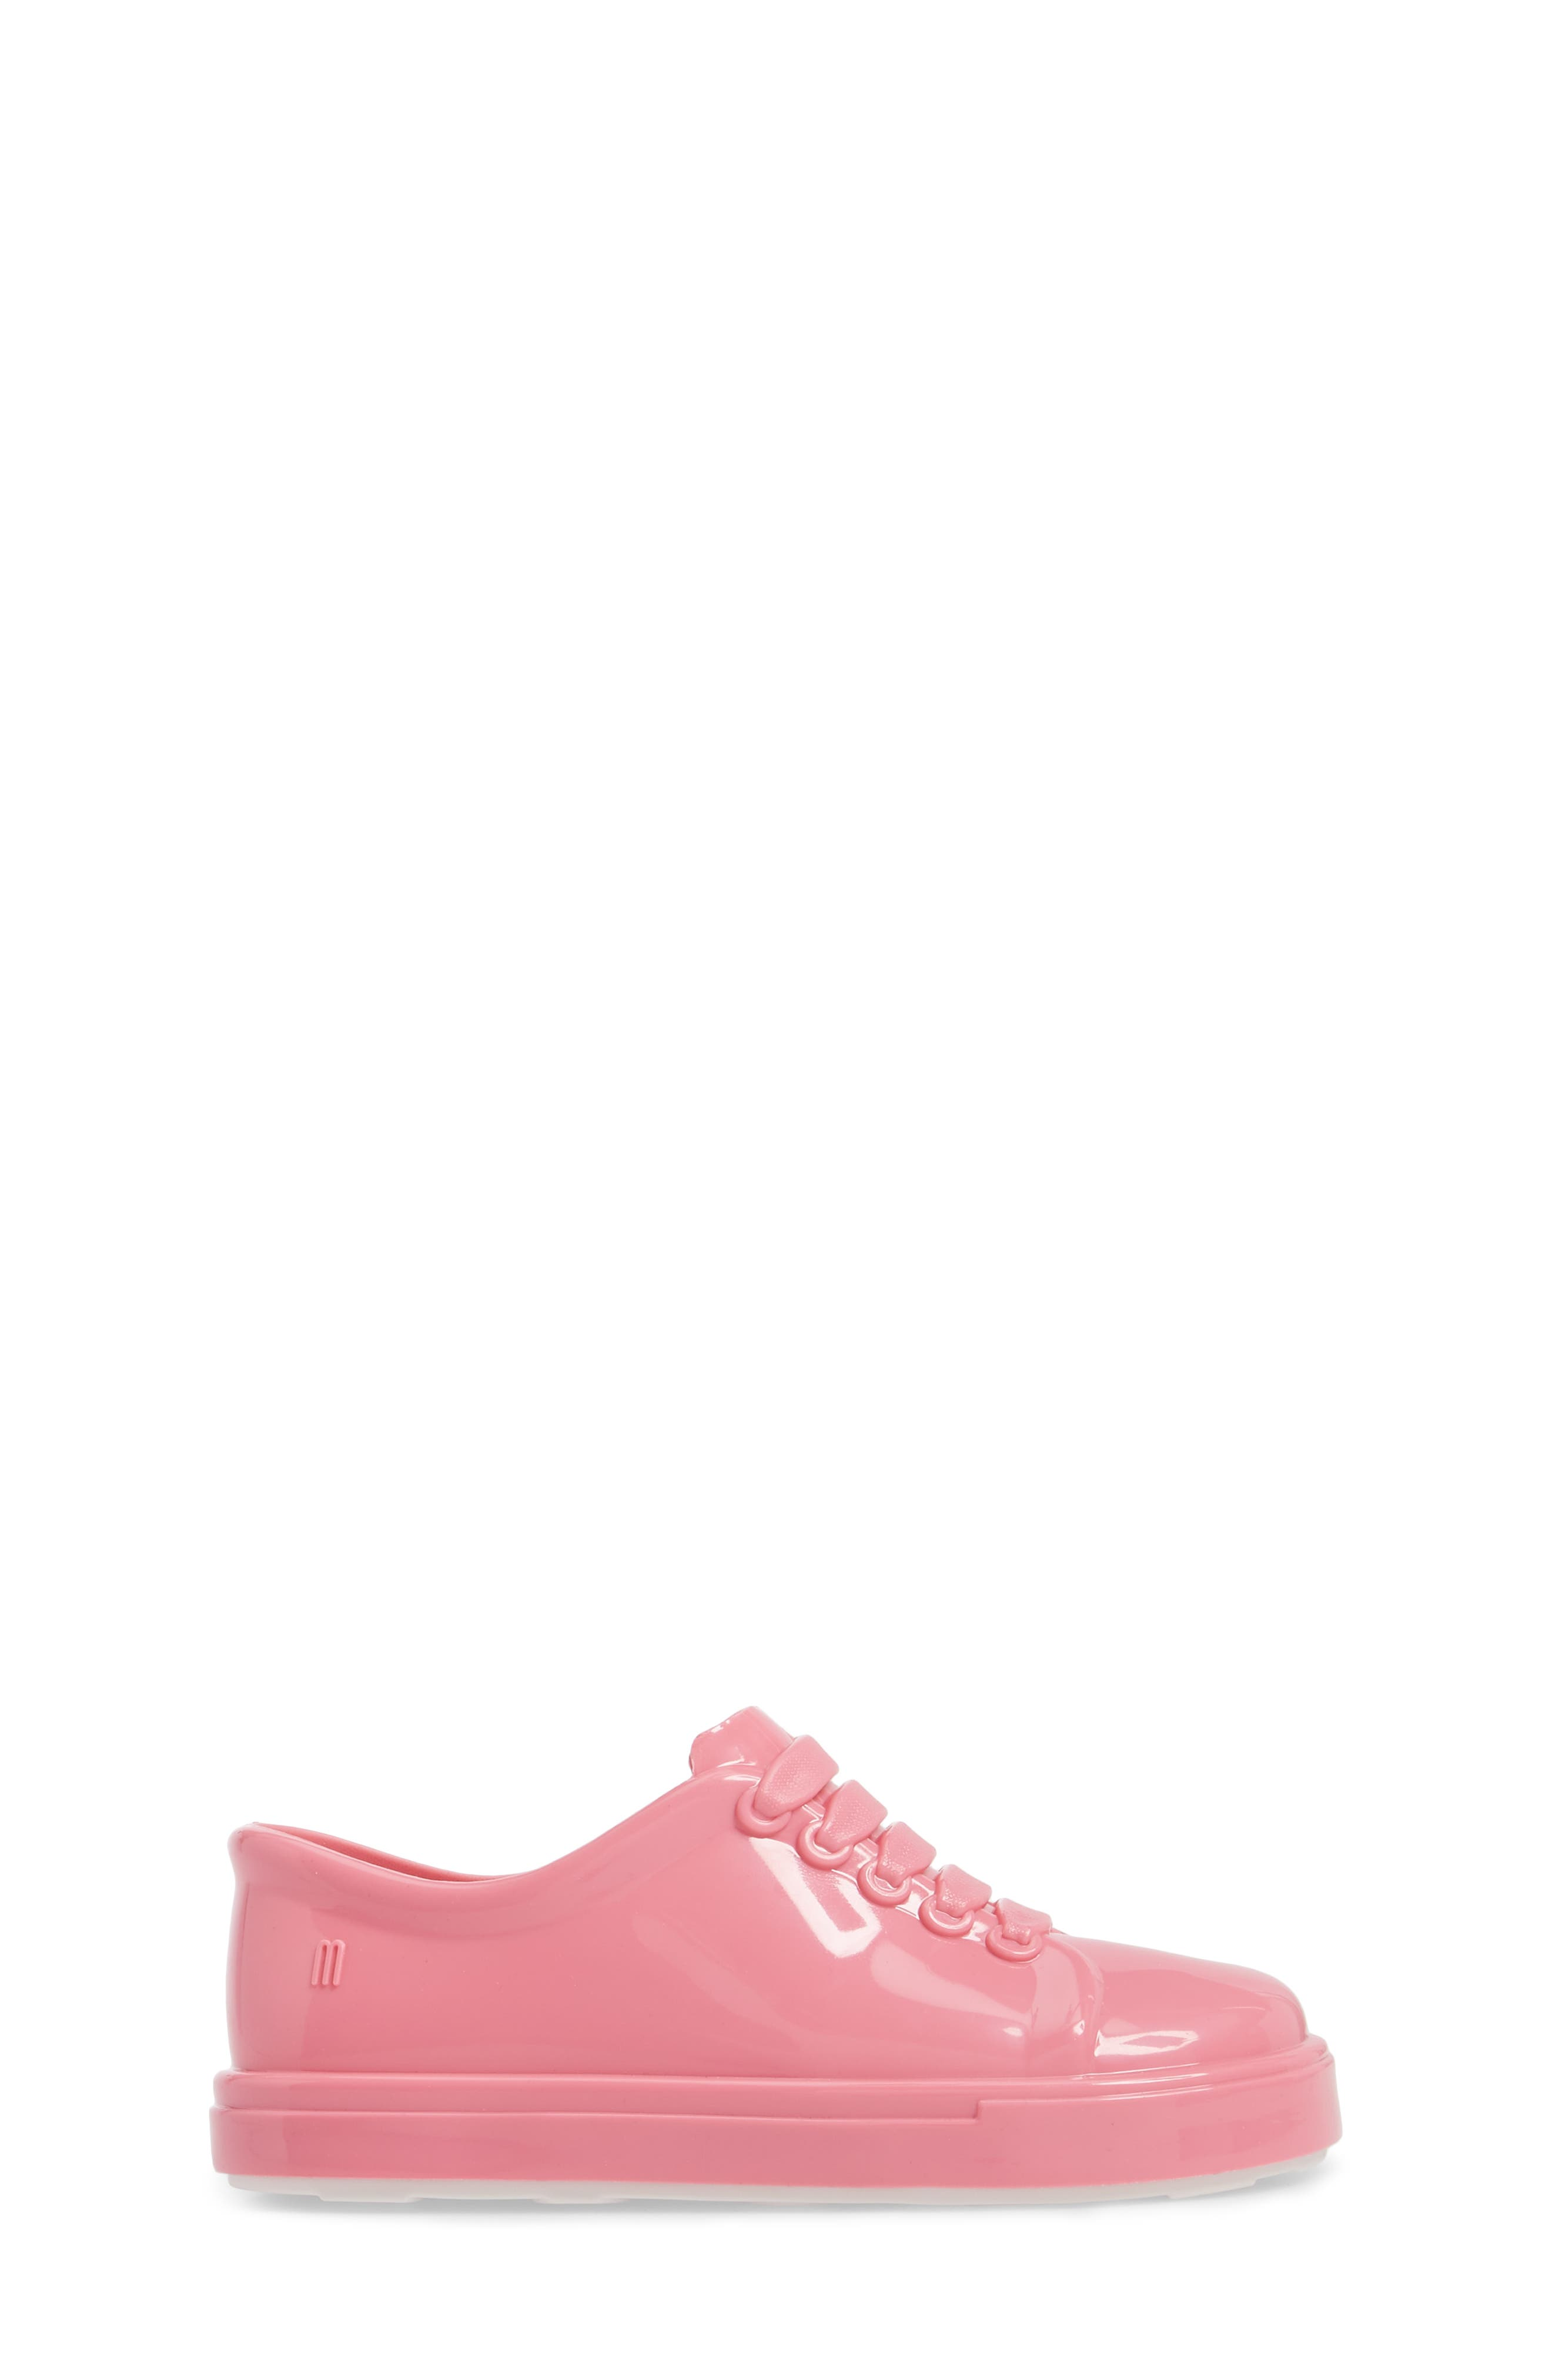 Be Slip-On Sneaker,                             Alternate thumbnail 3, color,                             Pink Candy